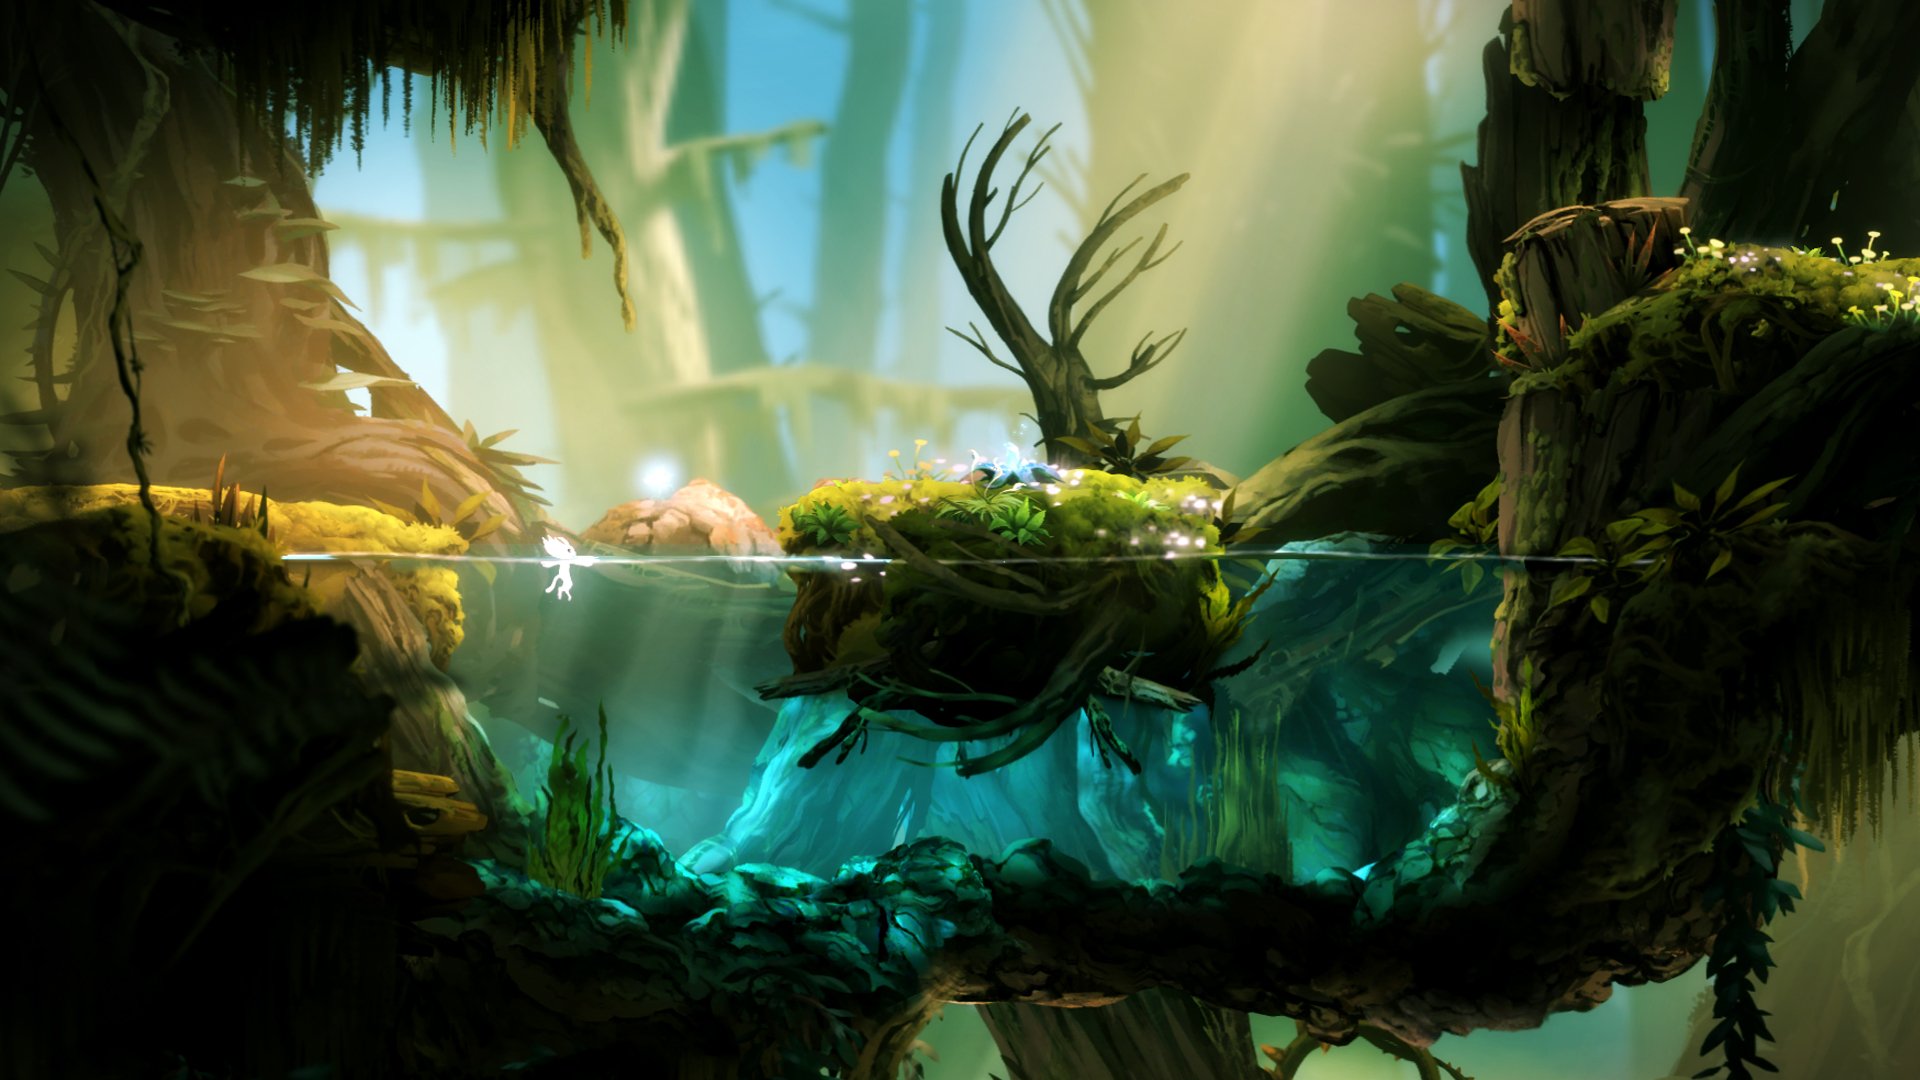 Magnificent Ori and the Blind Forest Wallpaper | Full HD ...